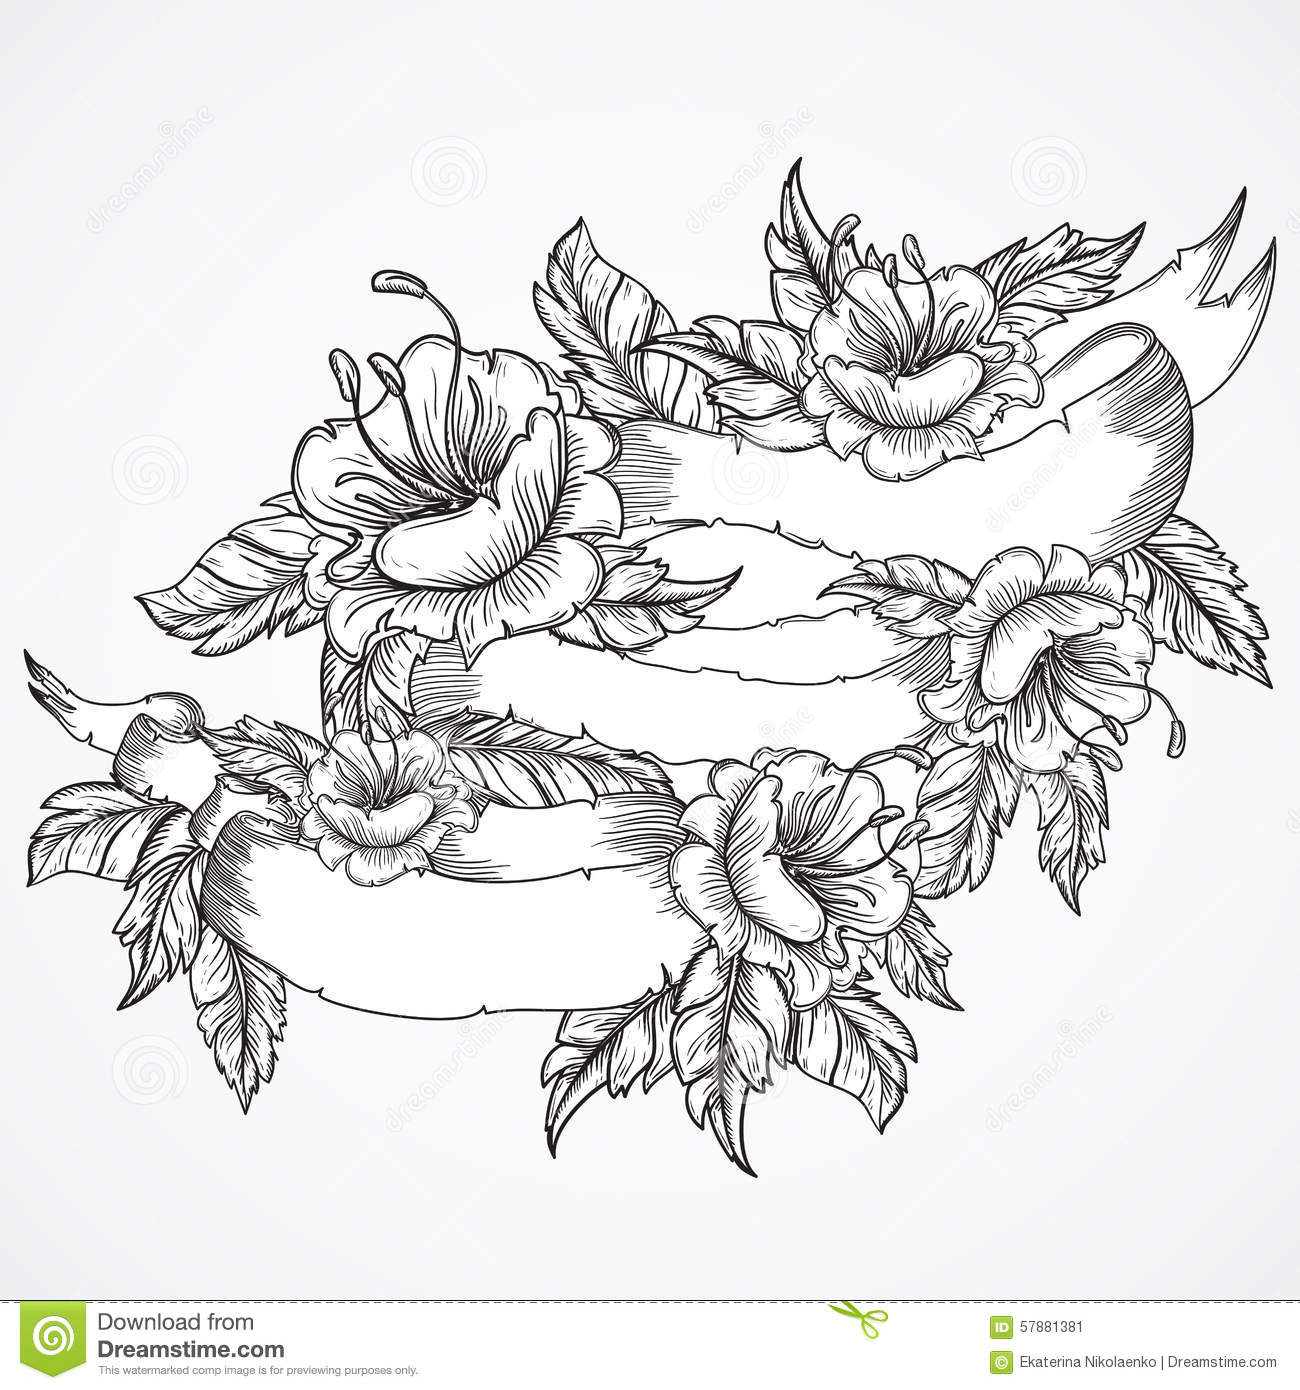 Vintage Floral Highly Detailed Hand Drawn Bouquet Of Flowers And